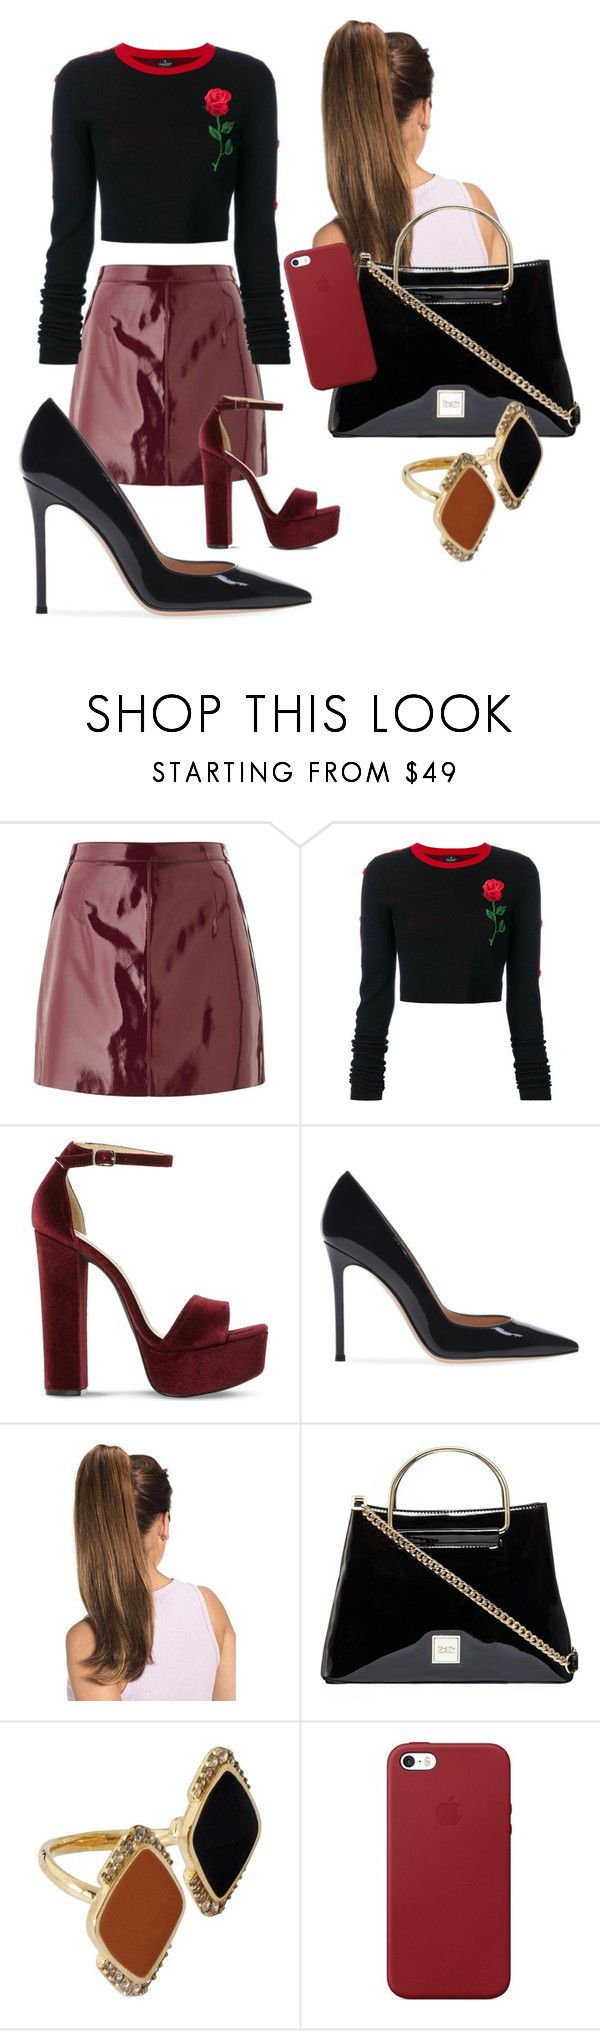 """Без названия #12"" by olya-chernenko ❤ liked on Polyvore featuring Miss Selfridge, County Of Milan, Steve Madden, Misis and Apple"